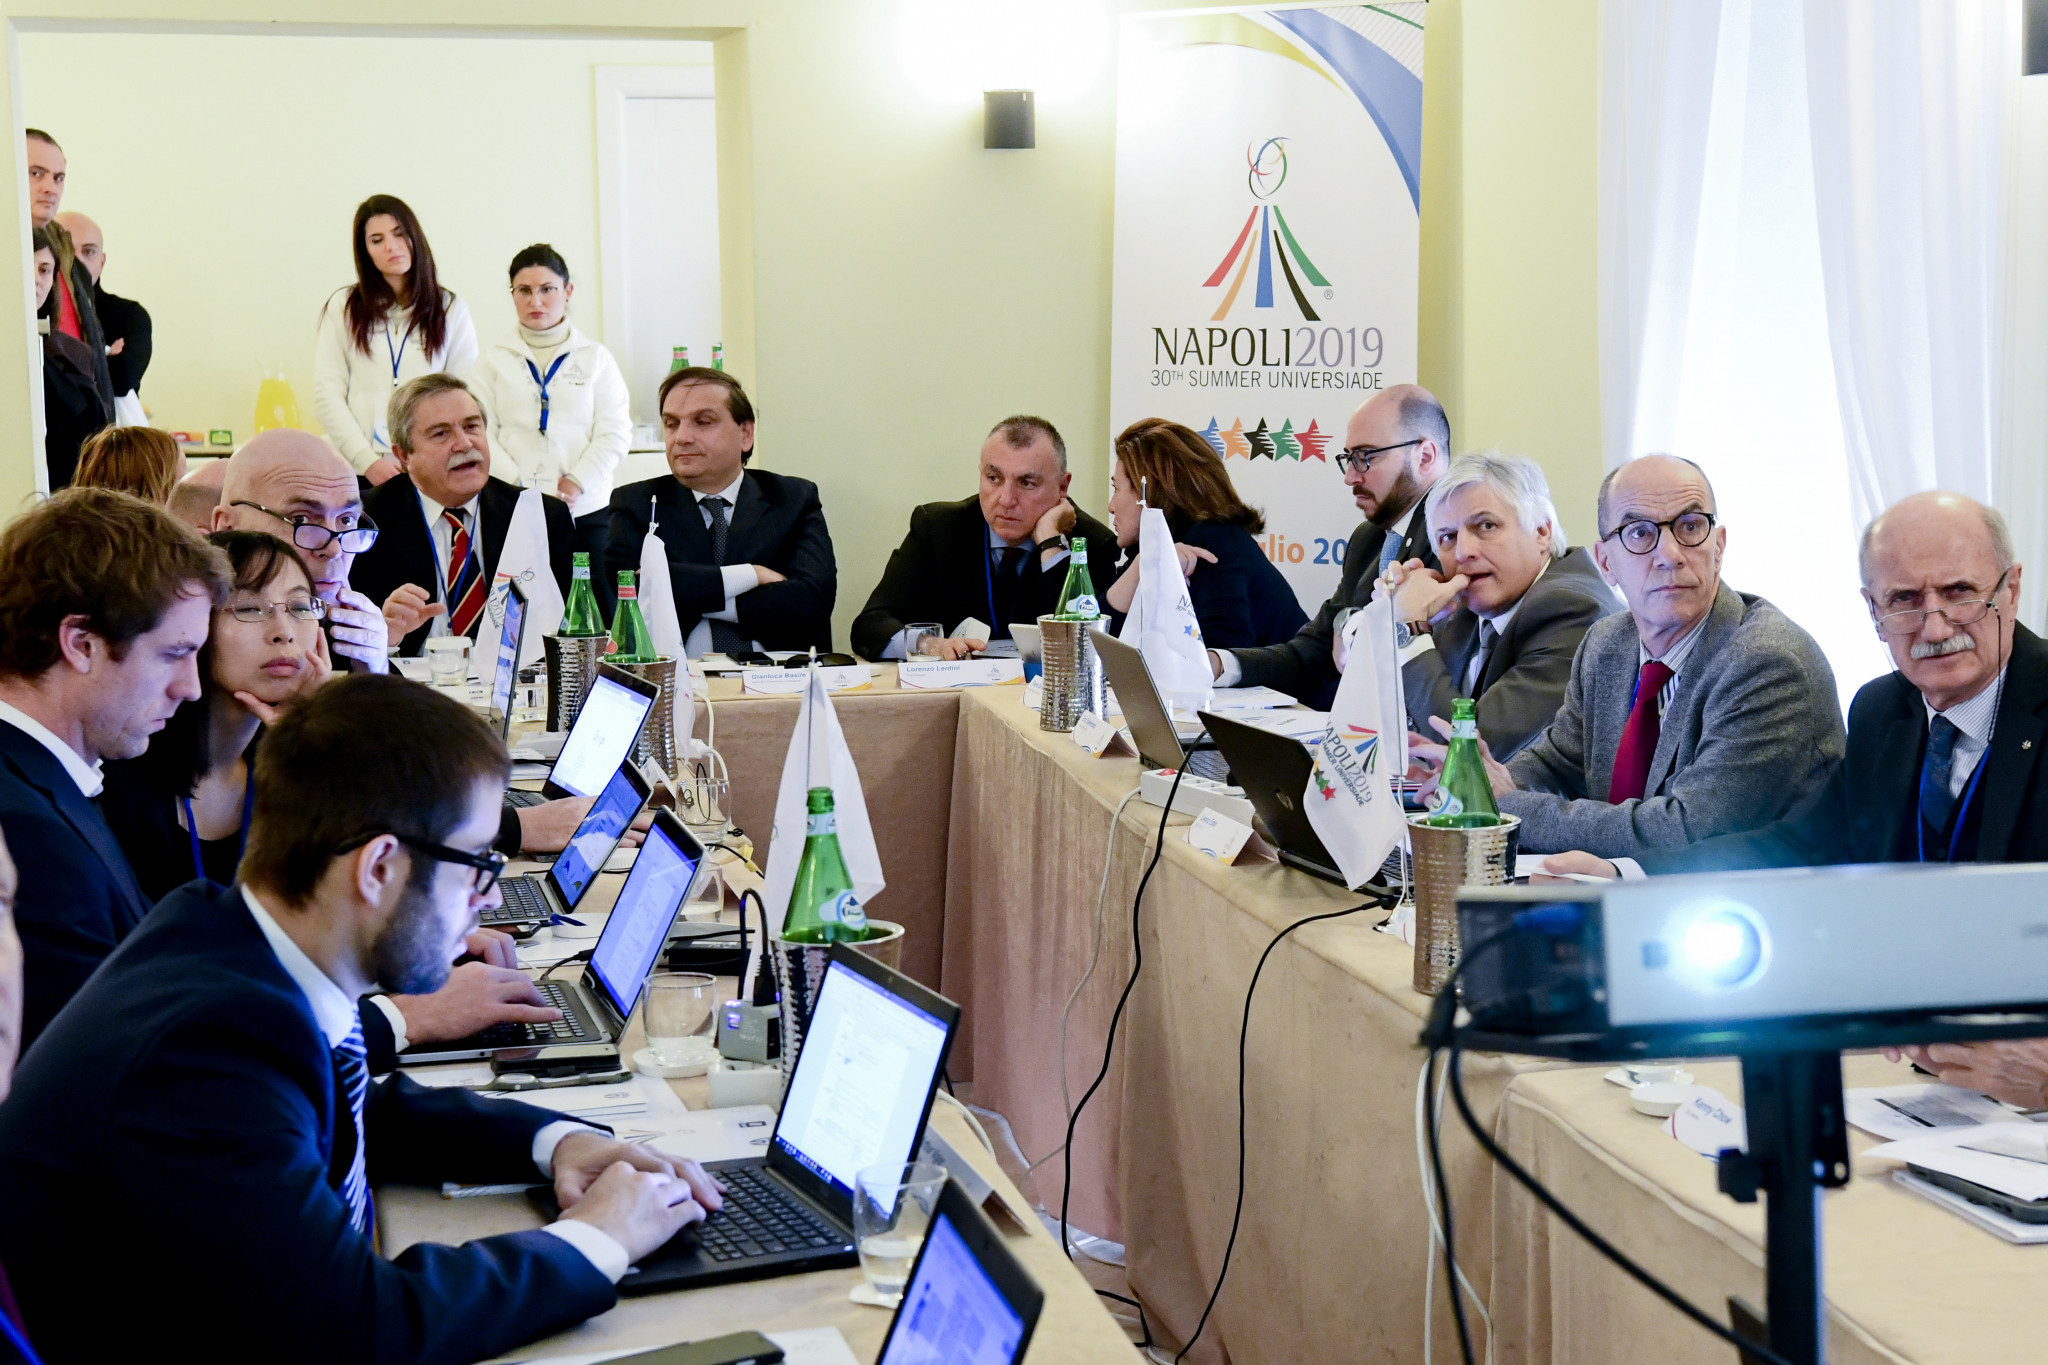 Head of Summer Universiade Supervision Committee praises Naples 2019 progress but warns challenges remain